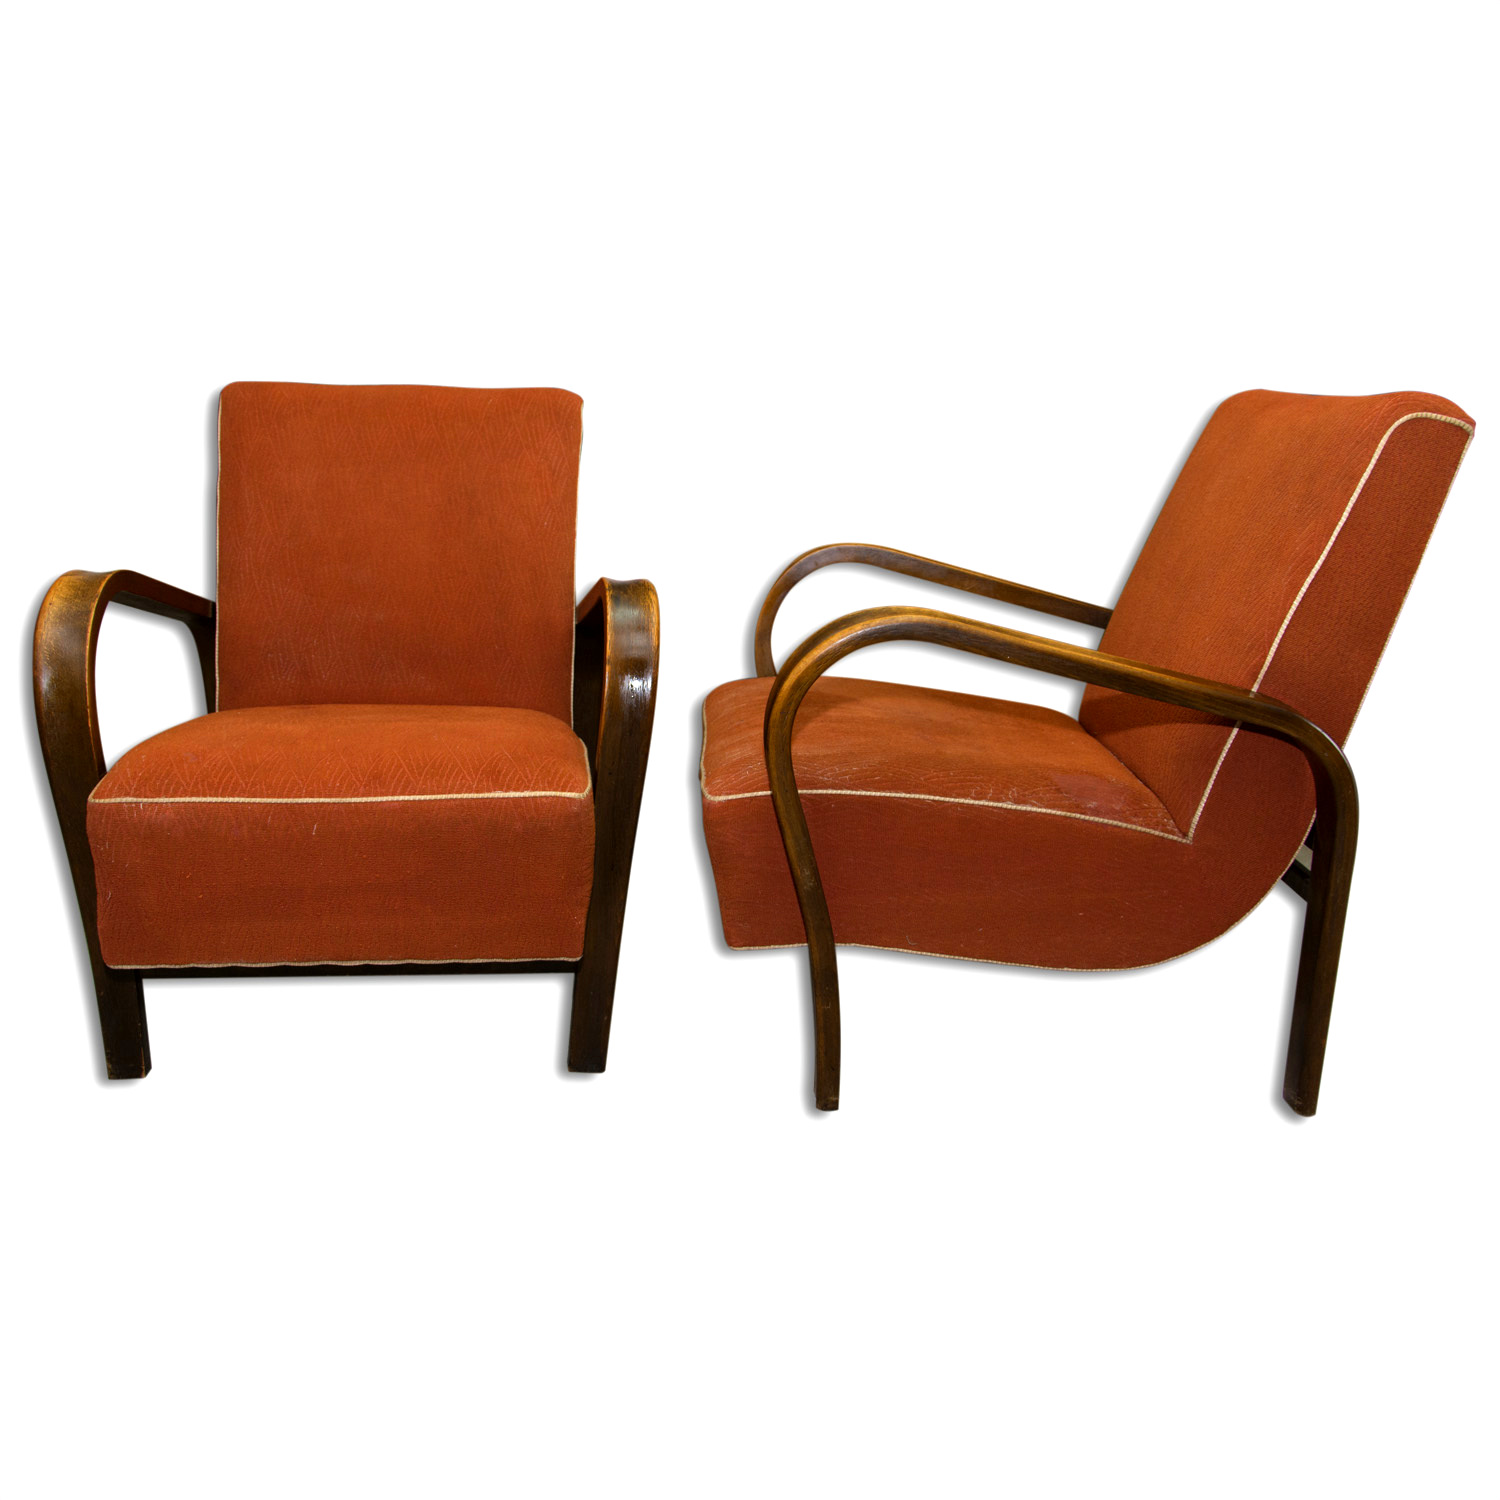 Awesome Jindrich Halabala Pair Of Art Deco Bentwood Armchairs 1940 Gmtry Best Dining Table And Chair Ideas Images Gmtryco